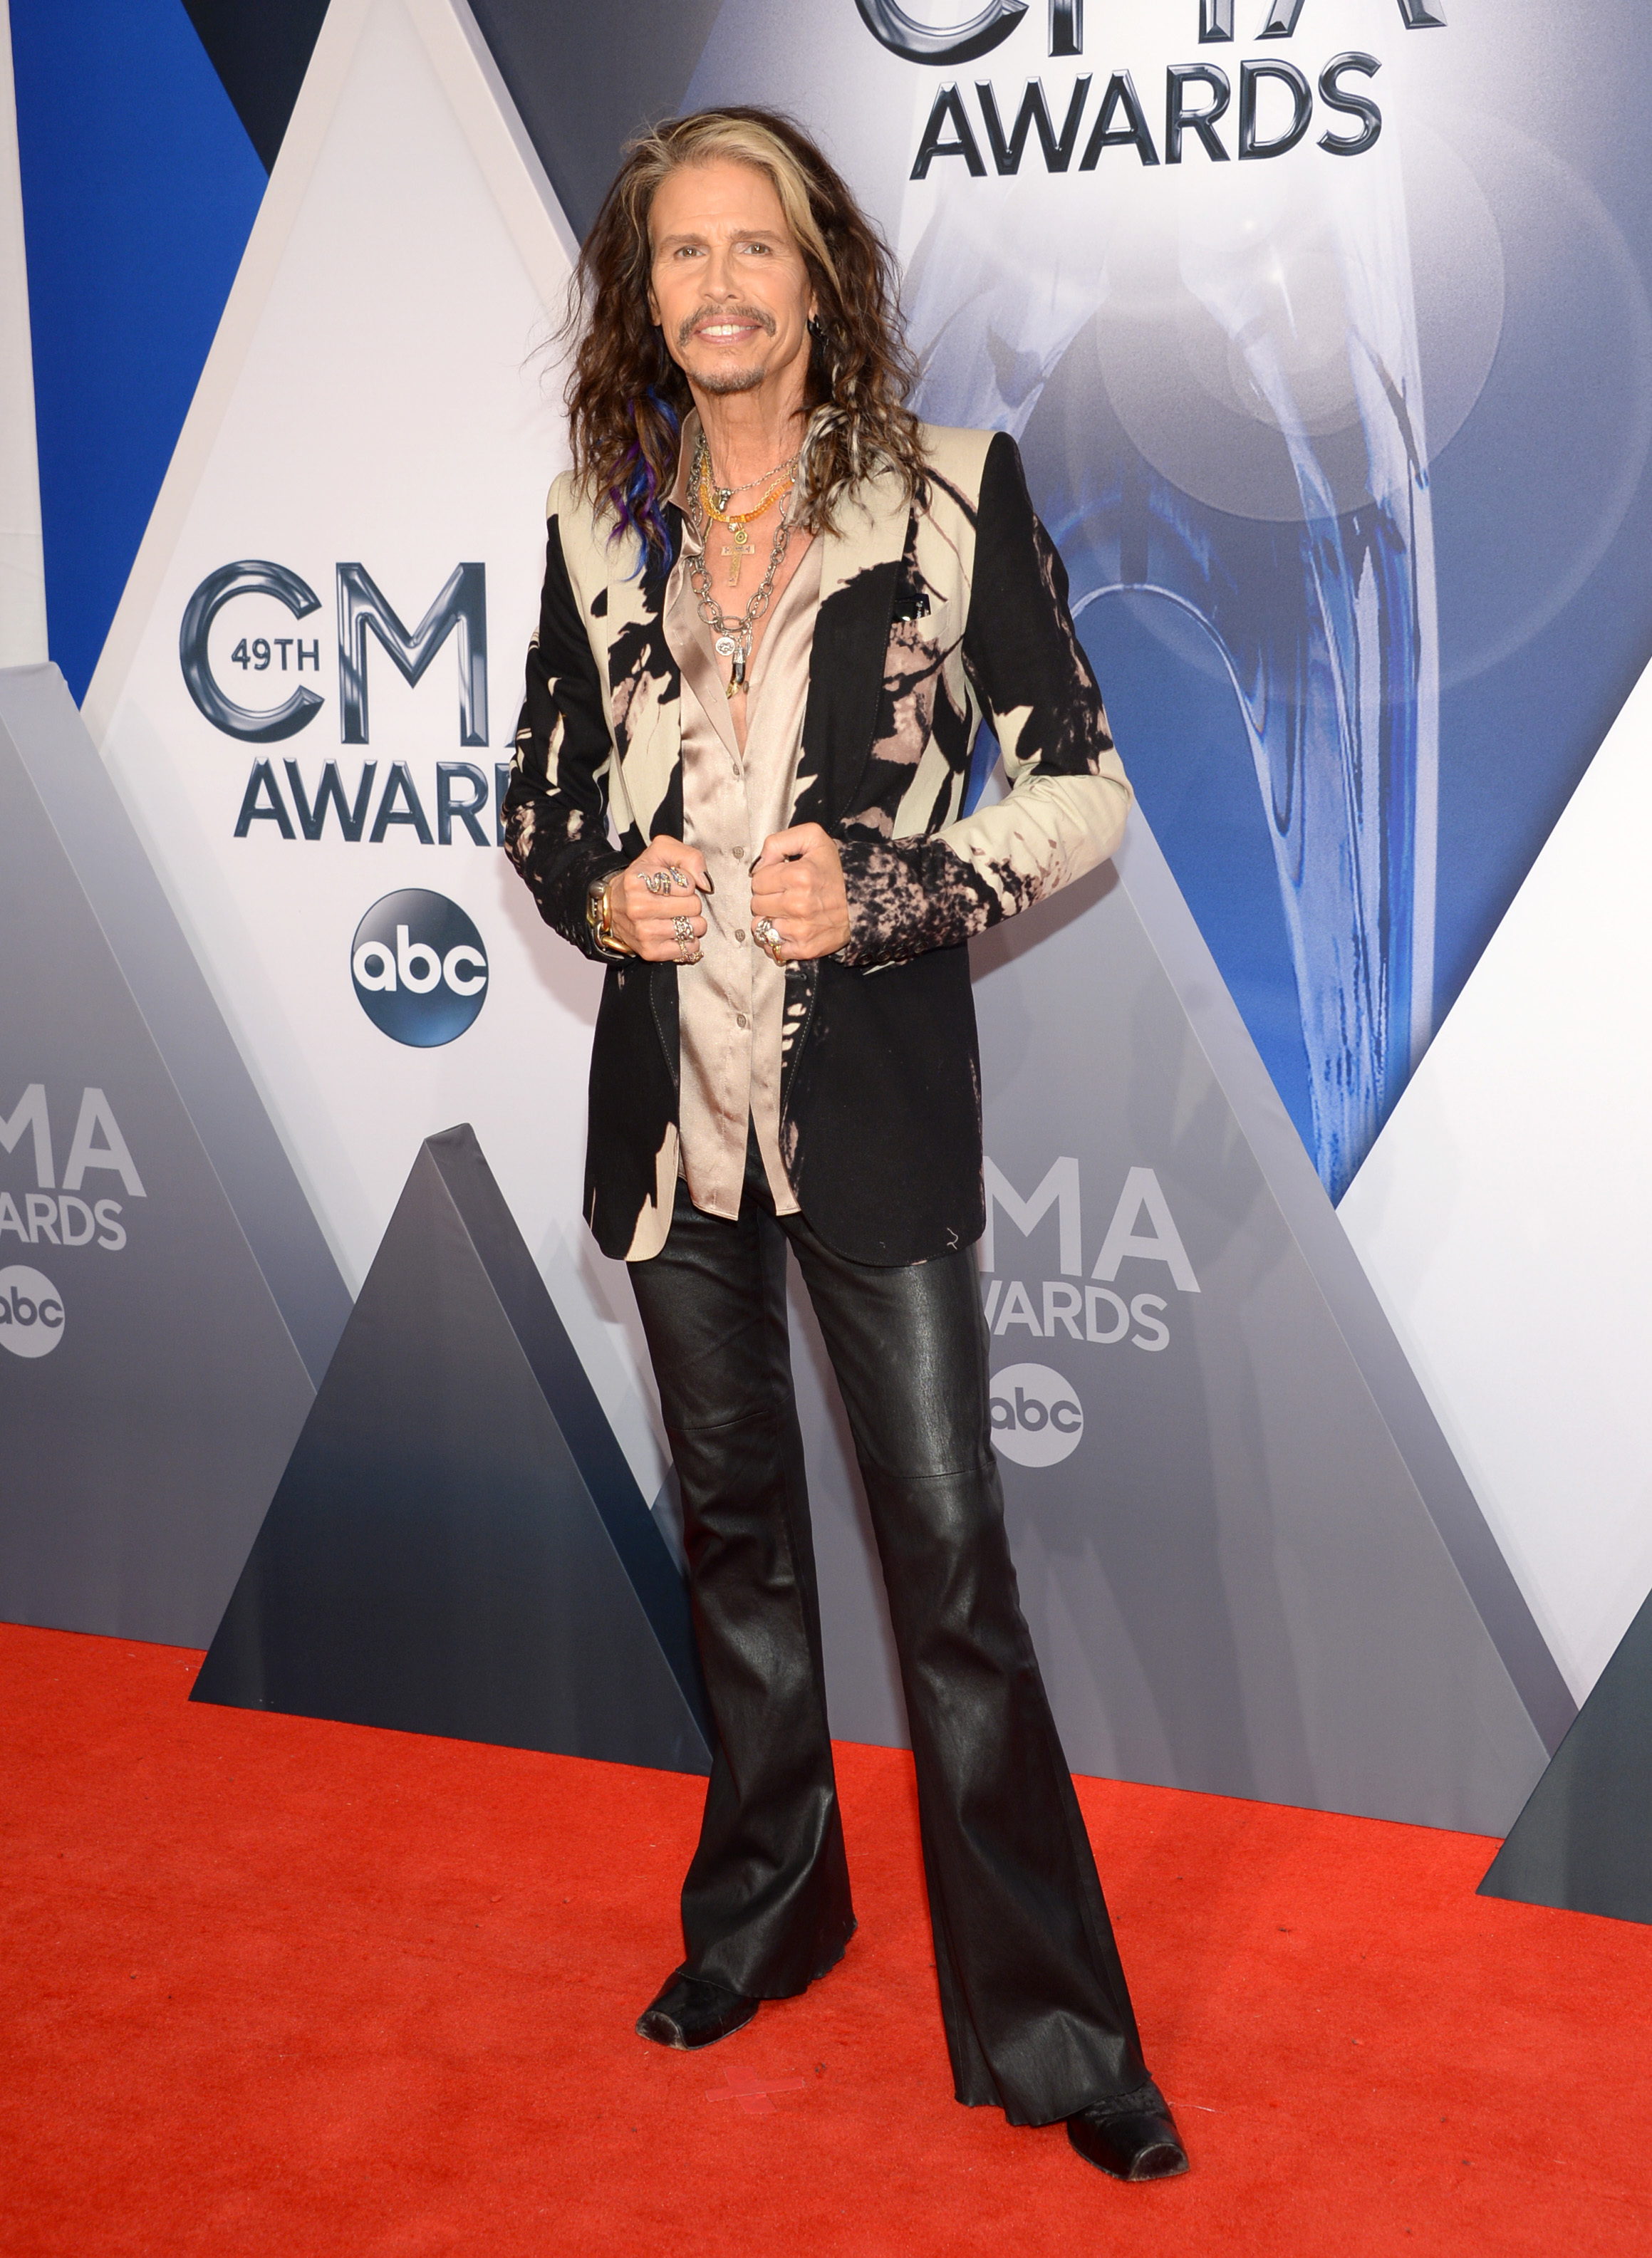 Steven Tyler celebrated his birthday with a $10k per night AirBnB freebie